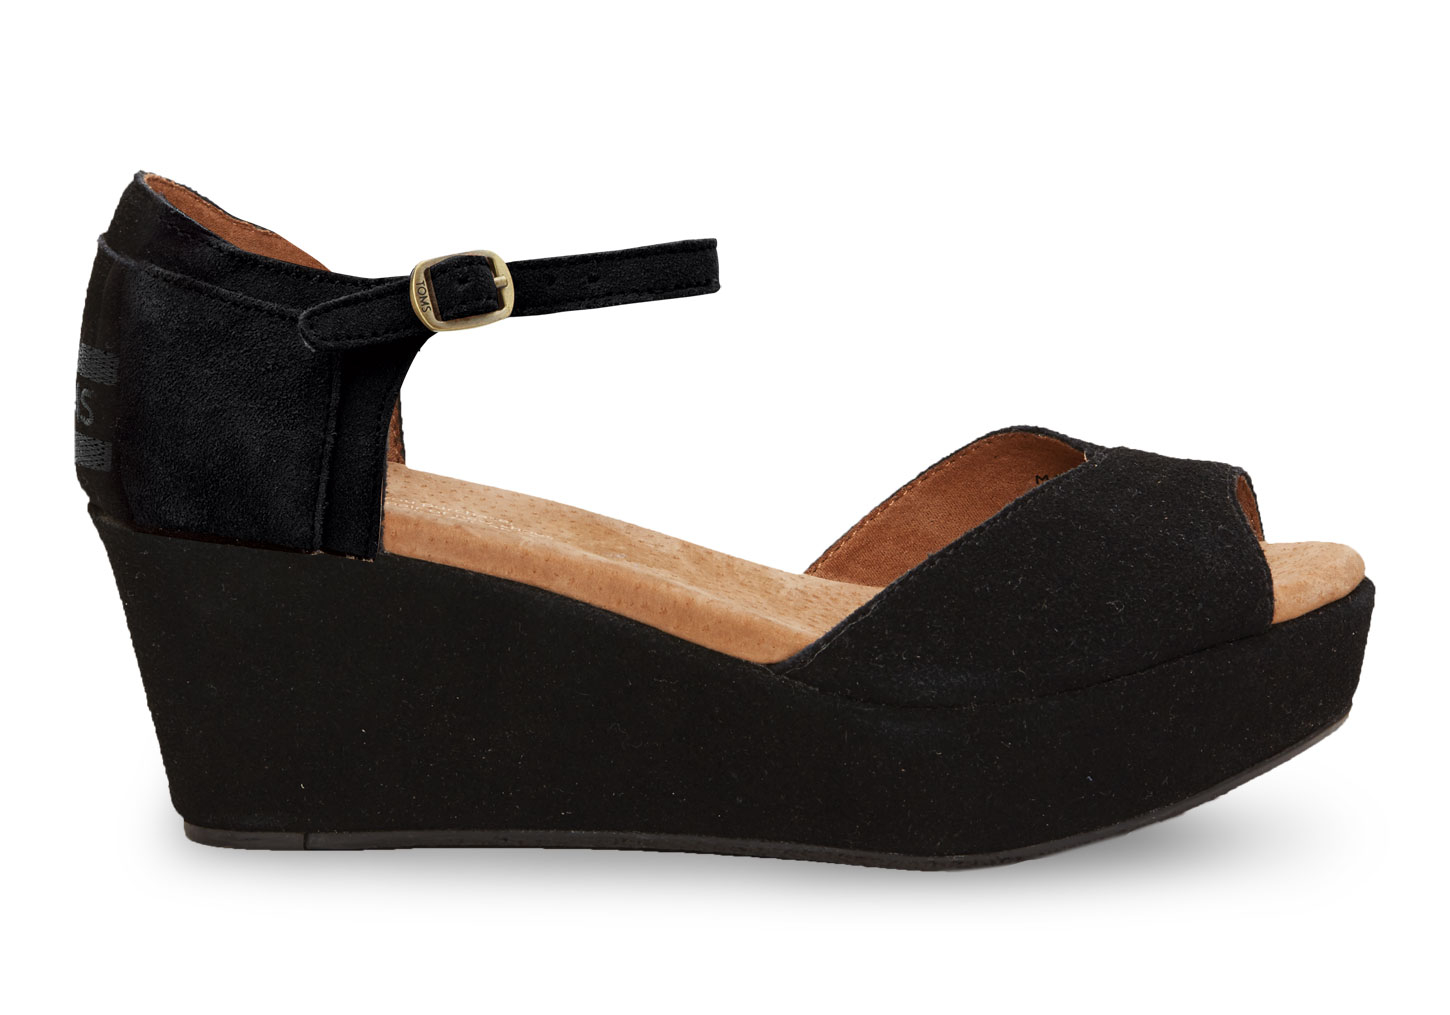 Toms Black Suede Women's Platform Wedges in Black | Lyst